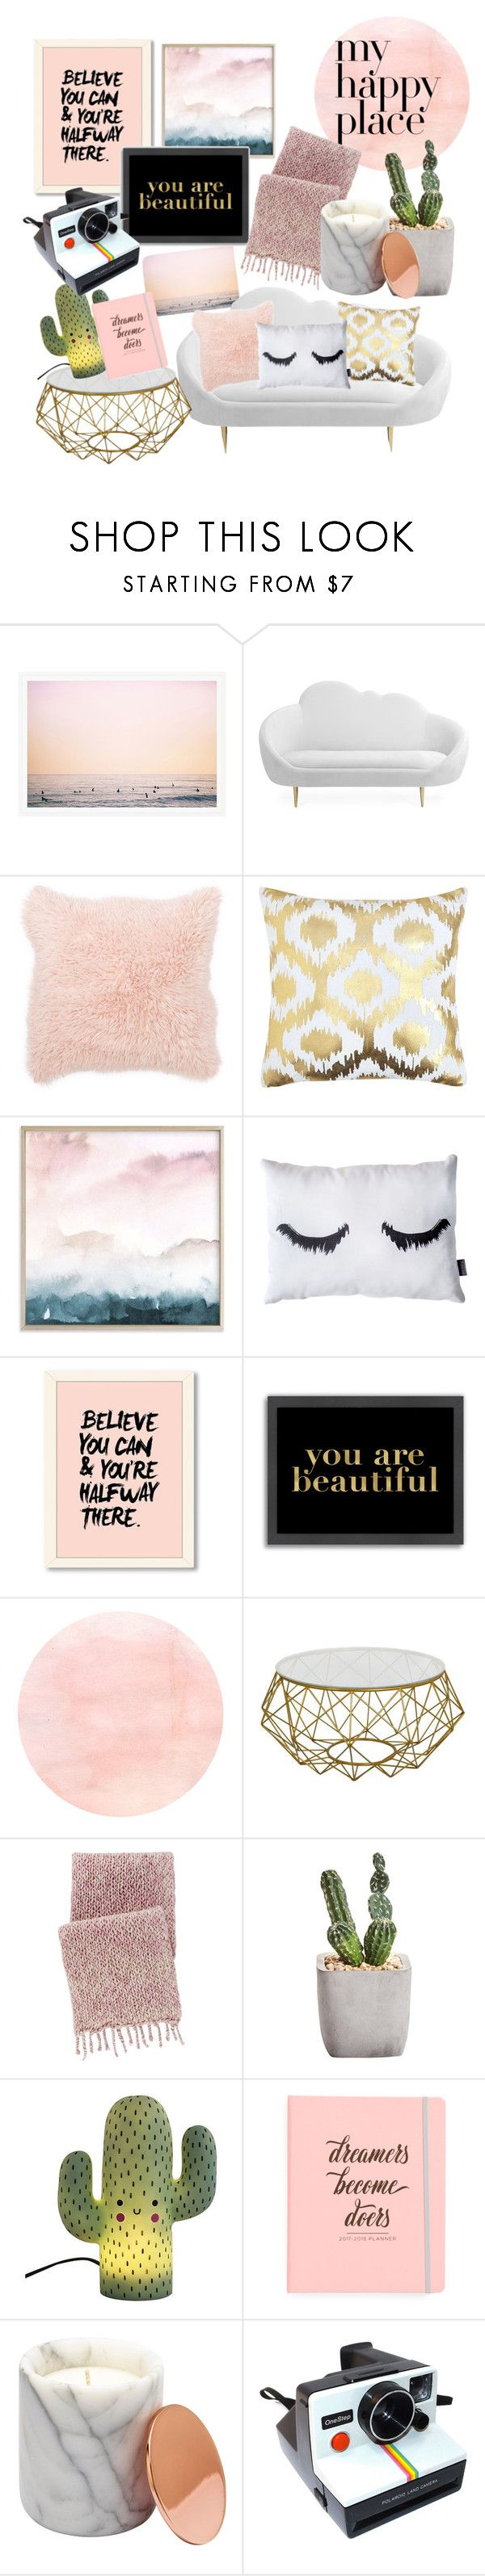 """My Happy Place🌸"" by elena-flip ❤ liked on Polyvore featuring interior, interiors, interior design, home, home decor, interior decorating, Nordstrom Rack, Americanflat, Pine Cone Hill and Polaroid"